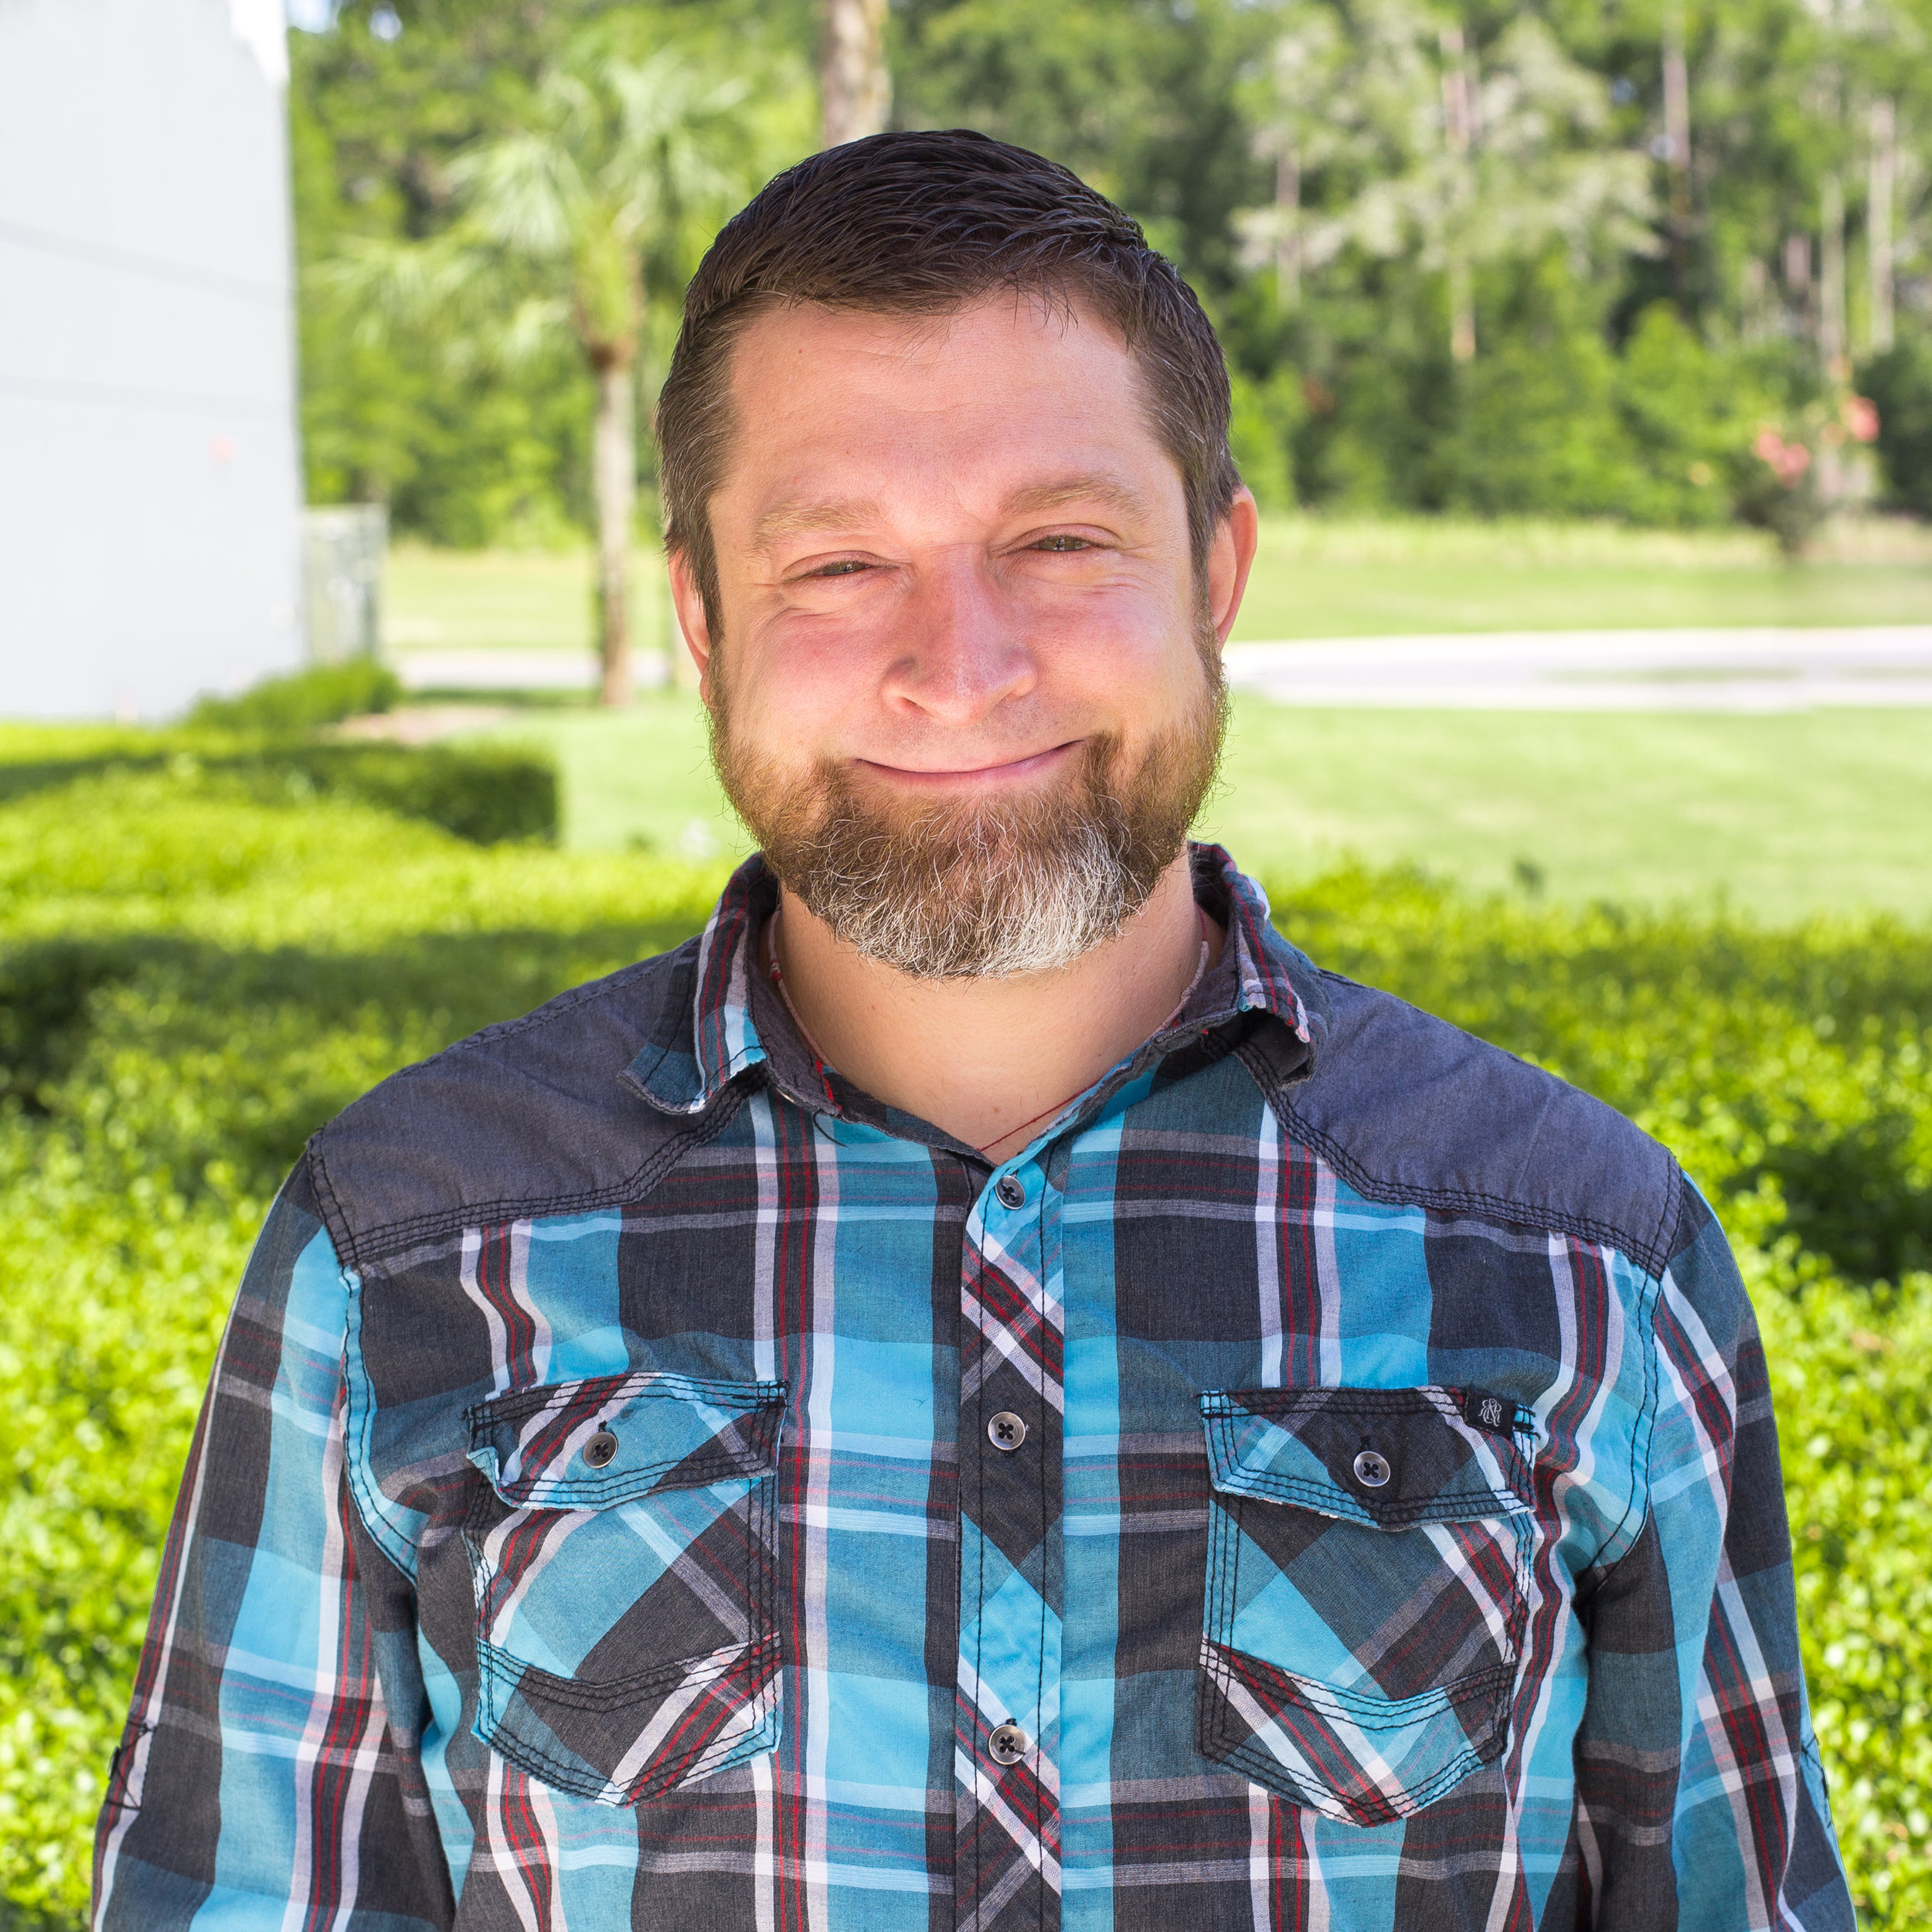 MIKE STORTS - The Villages campus Pastor's Assistantmike@thesprings.net